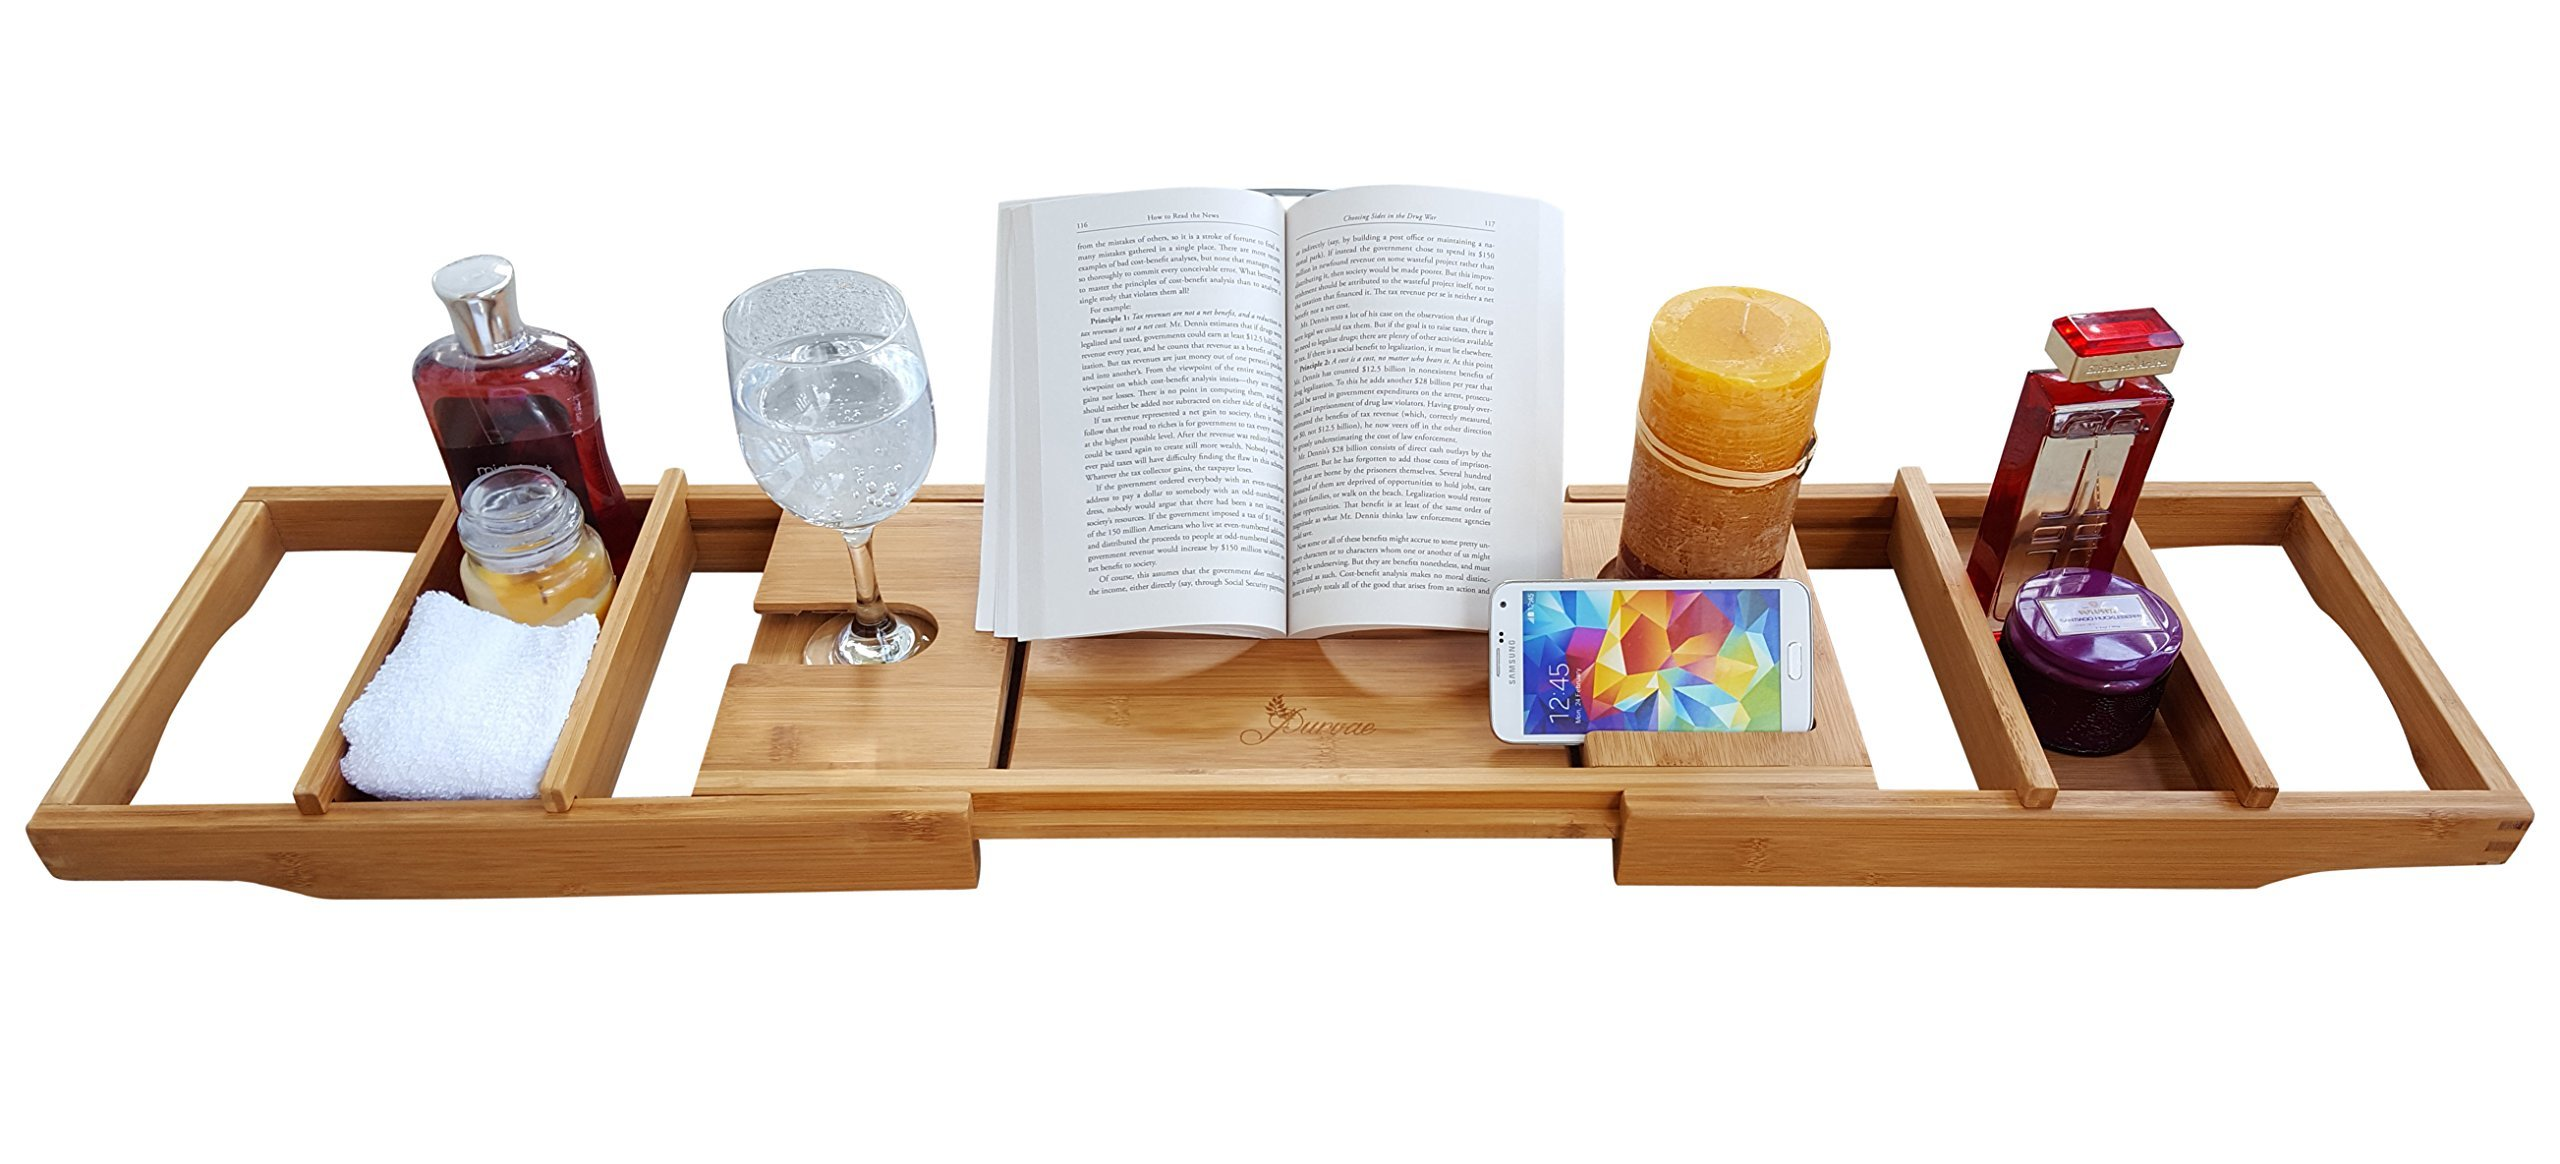 Buy Purvae Luxury Bathtub Caddy With Candle & Book Holder - Natural ...